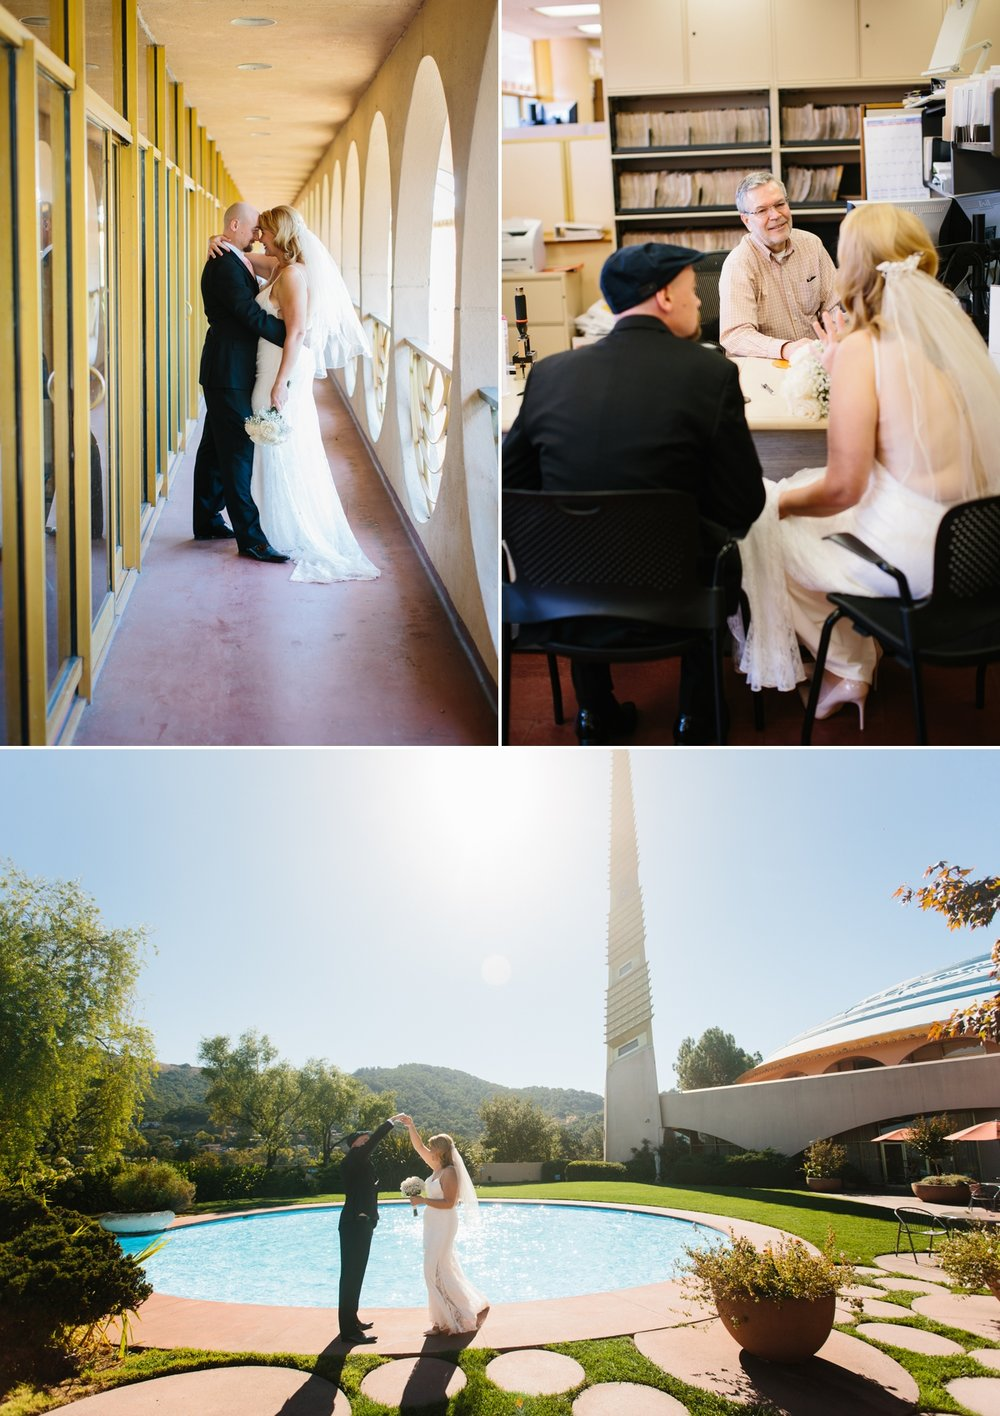 The engaged couple walks the hallways, meets with the Marin county clerk, and a twirl in front of the circular pool.